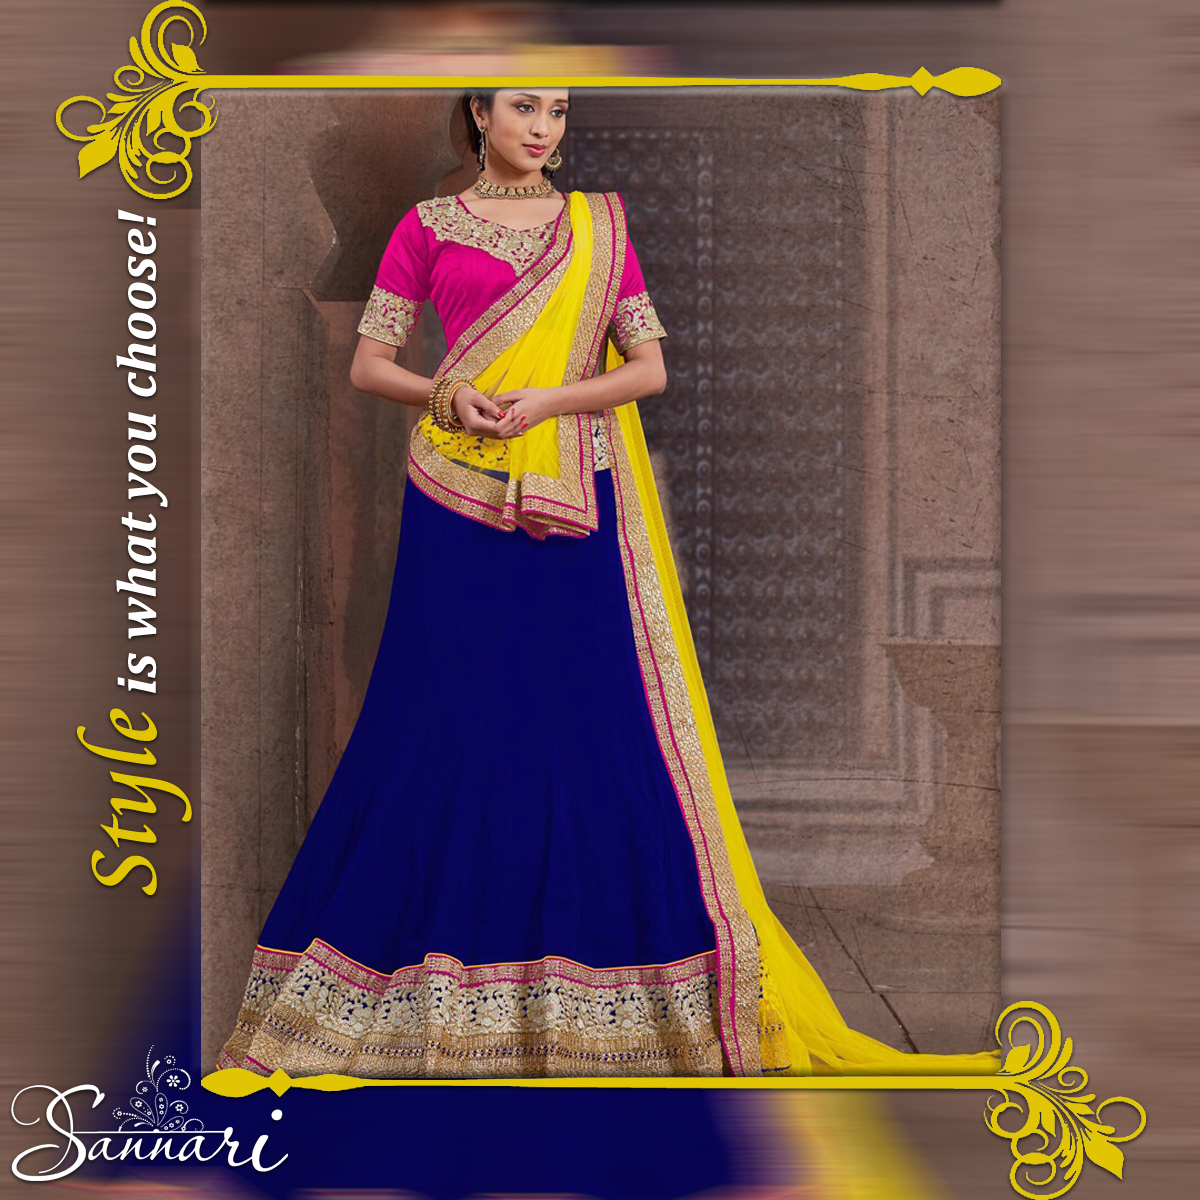 #Style is what you choose.  And sannarinx.com is an assurance that whatever you choose here, shall be stylish in every possible way!  -- For any #order or Queries be in touch with us on: +919586099777 (Call or #whatsapp)  Shop at www.sannarinx.com #fashiontrends #fashionindia